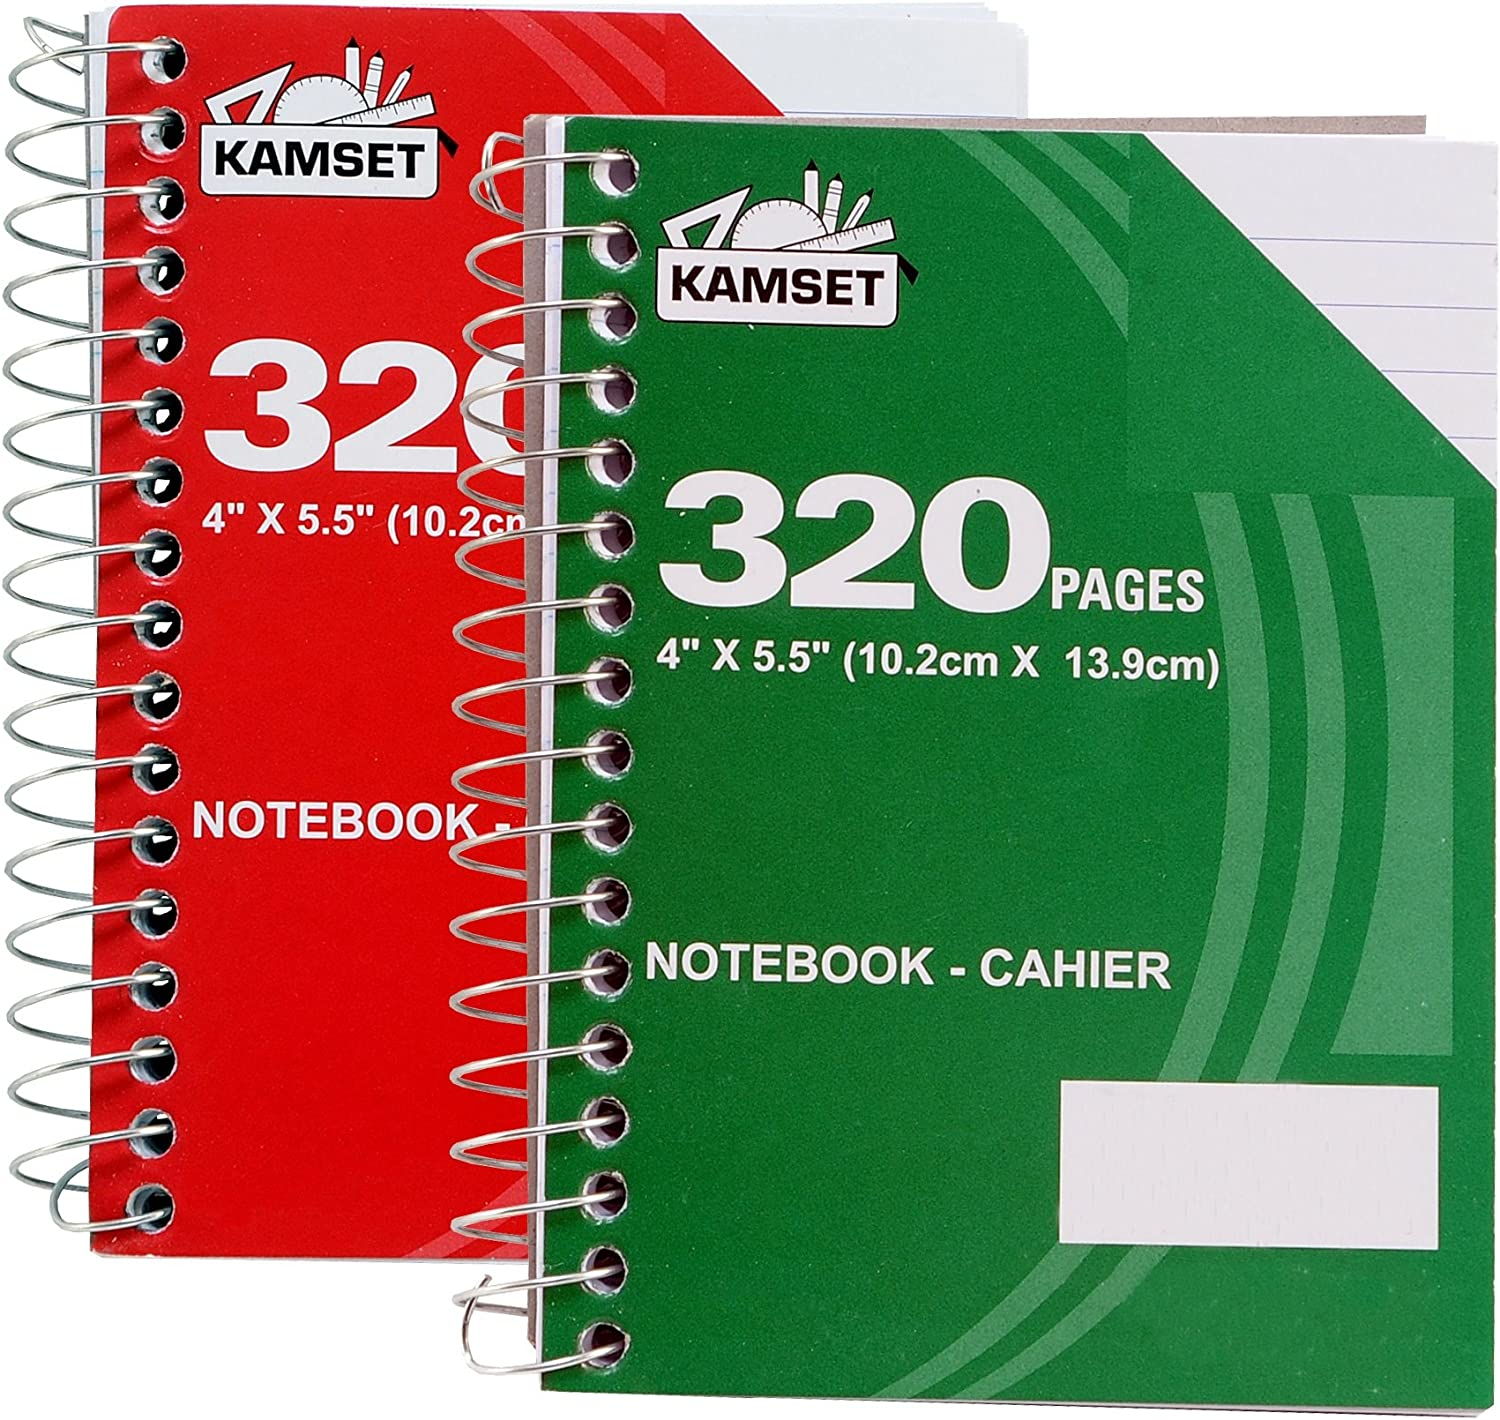 2021 Pack of 2 Cahier Spiral Notebooks x latest 4 Ruled 5.5-Inch College